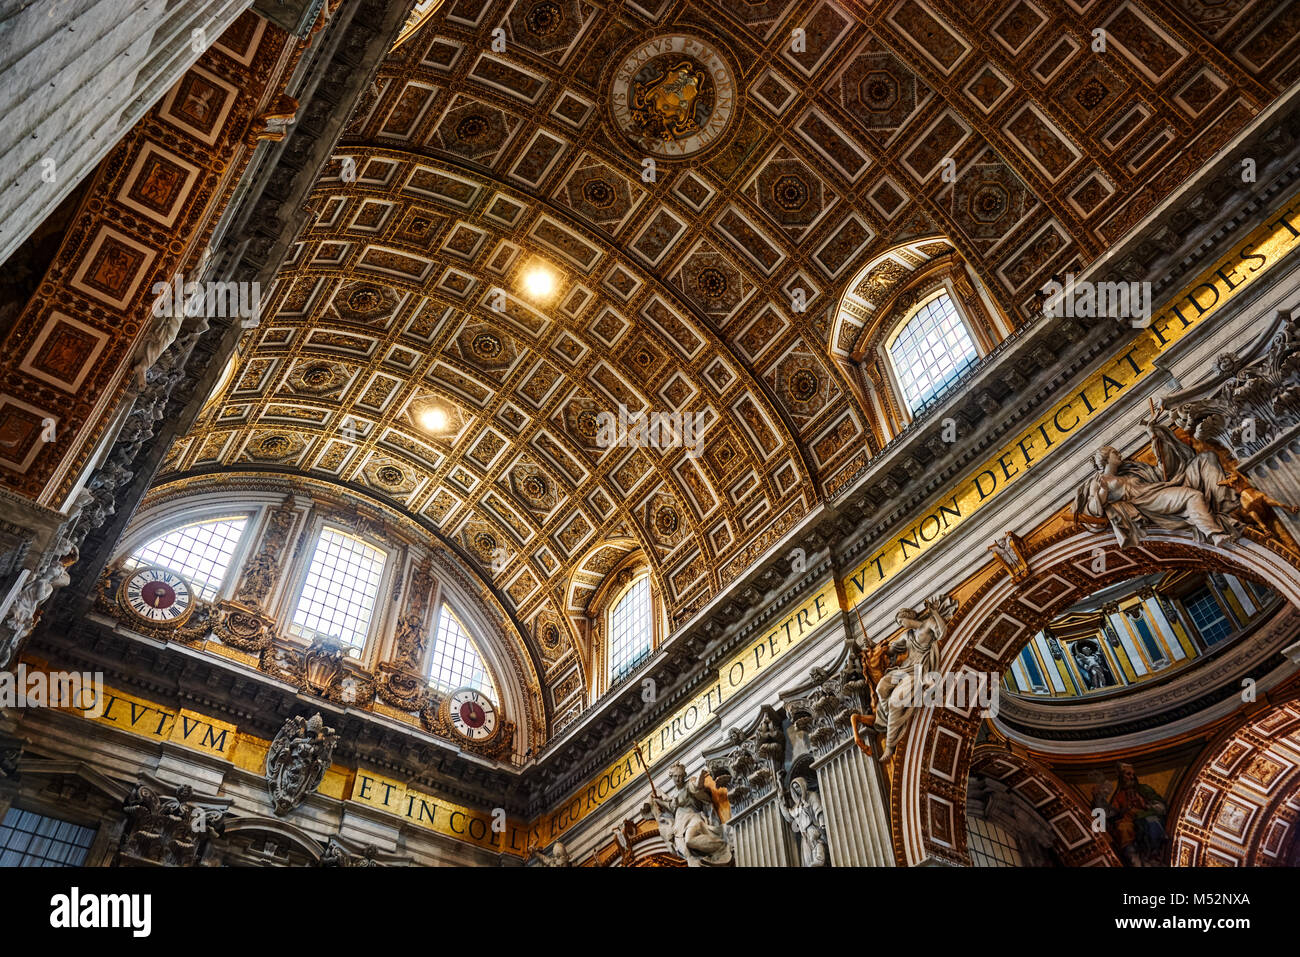 VATICAN CITY, VATICAN - MAY 17, 2017: Interior view of the Basilica of Saint Peter in the Vatican. - Stock Image